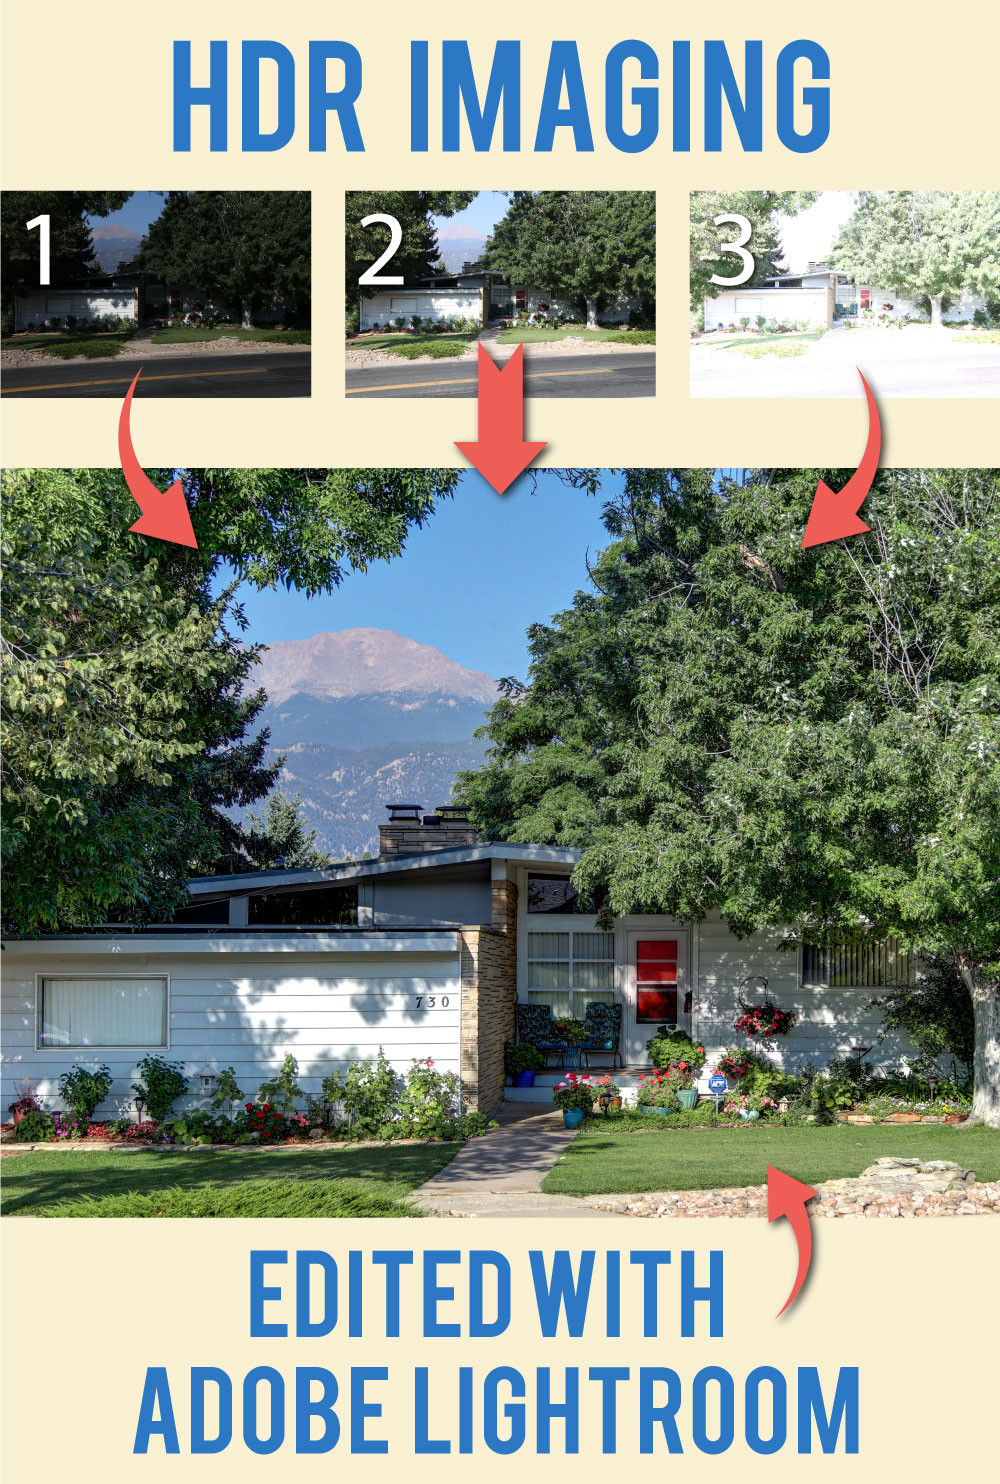 HDR Imaging for Real Estate Photos